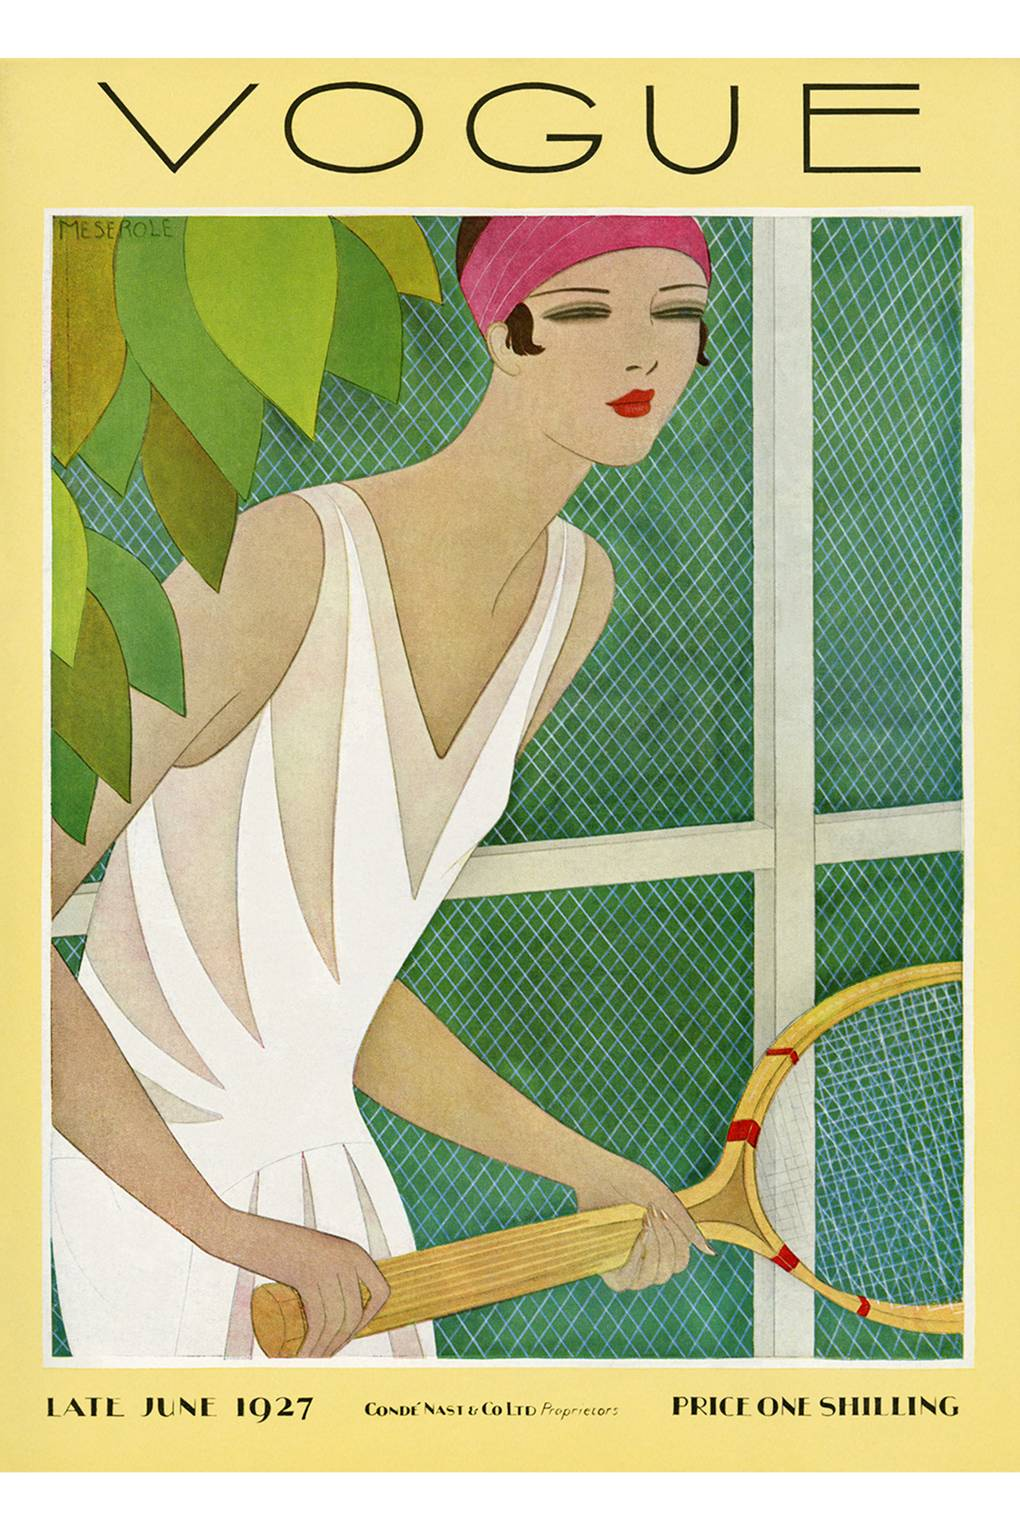 Tennis Vogue June 1927 cover by Harriet Meserole 15 July 1927 US edition